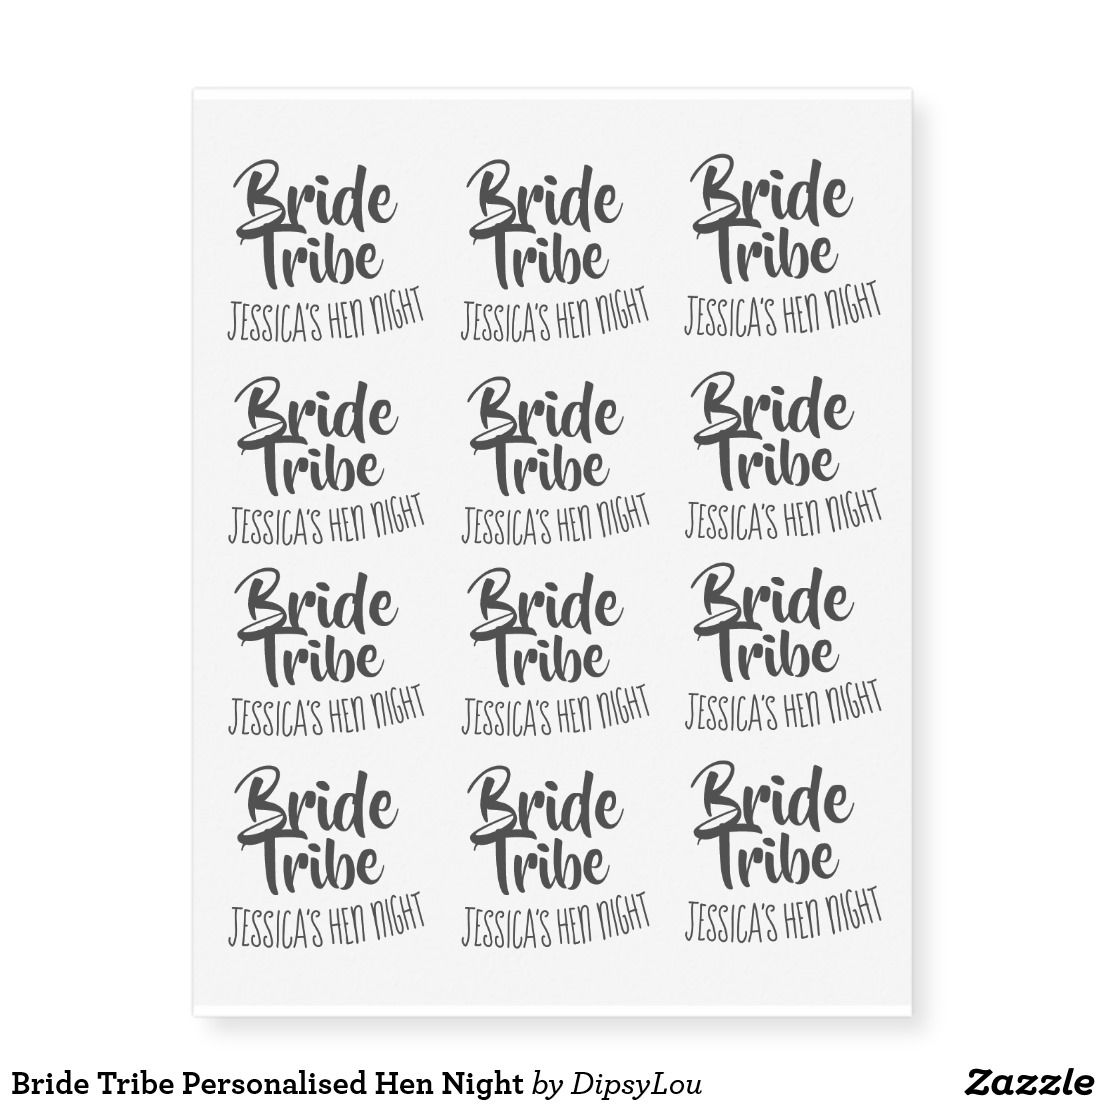 Bride Tribe Personalised Hen Night Temporary Tattoos Zazzle Com Bride Tribe Hens Night Bride Tribe Tattoo